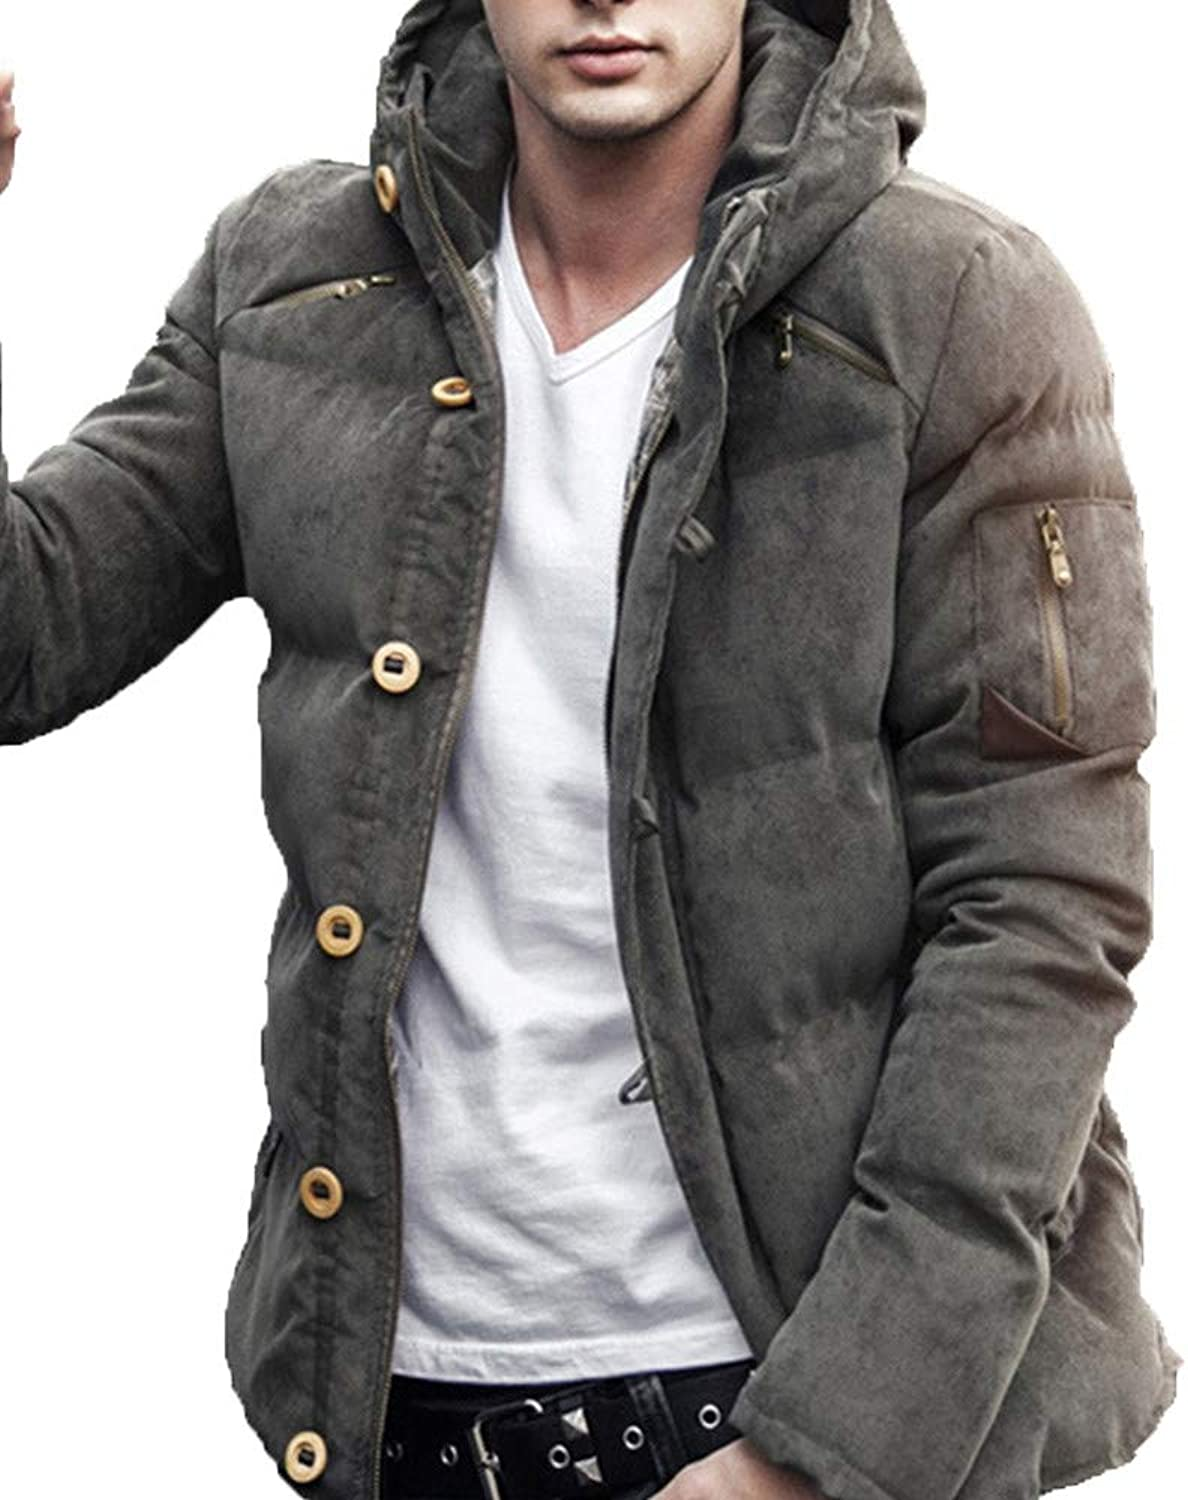 Men's Autumn Winter Pure color Pocket Zipper Hooded Jacket Caps Top Coat (color   Army Green, Size   L)